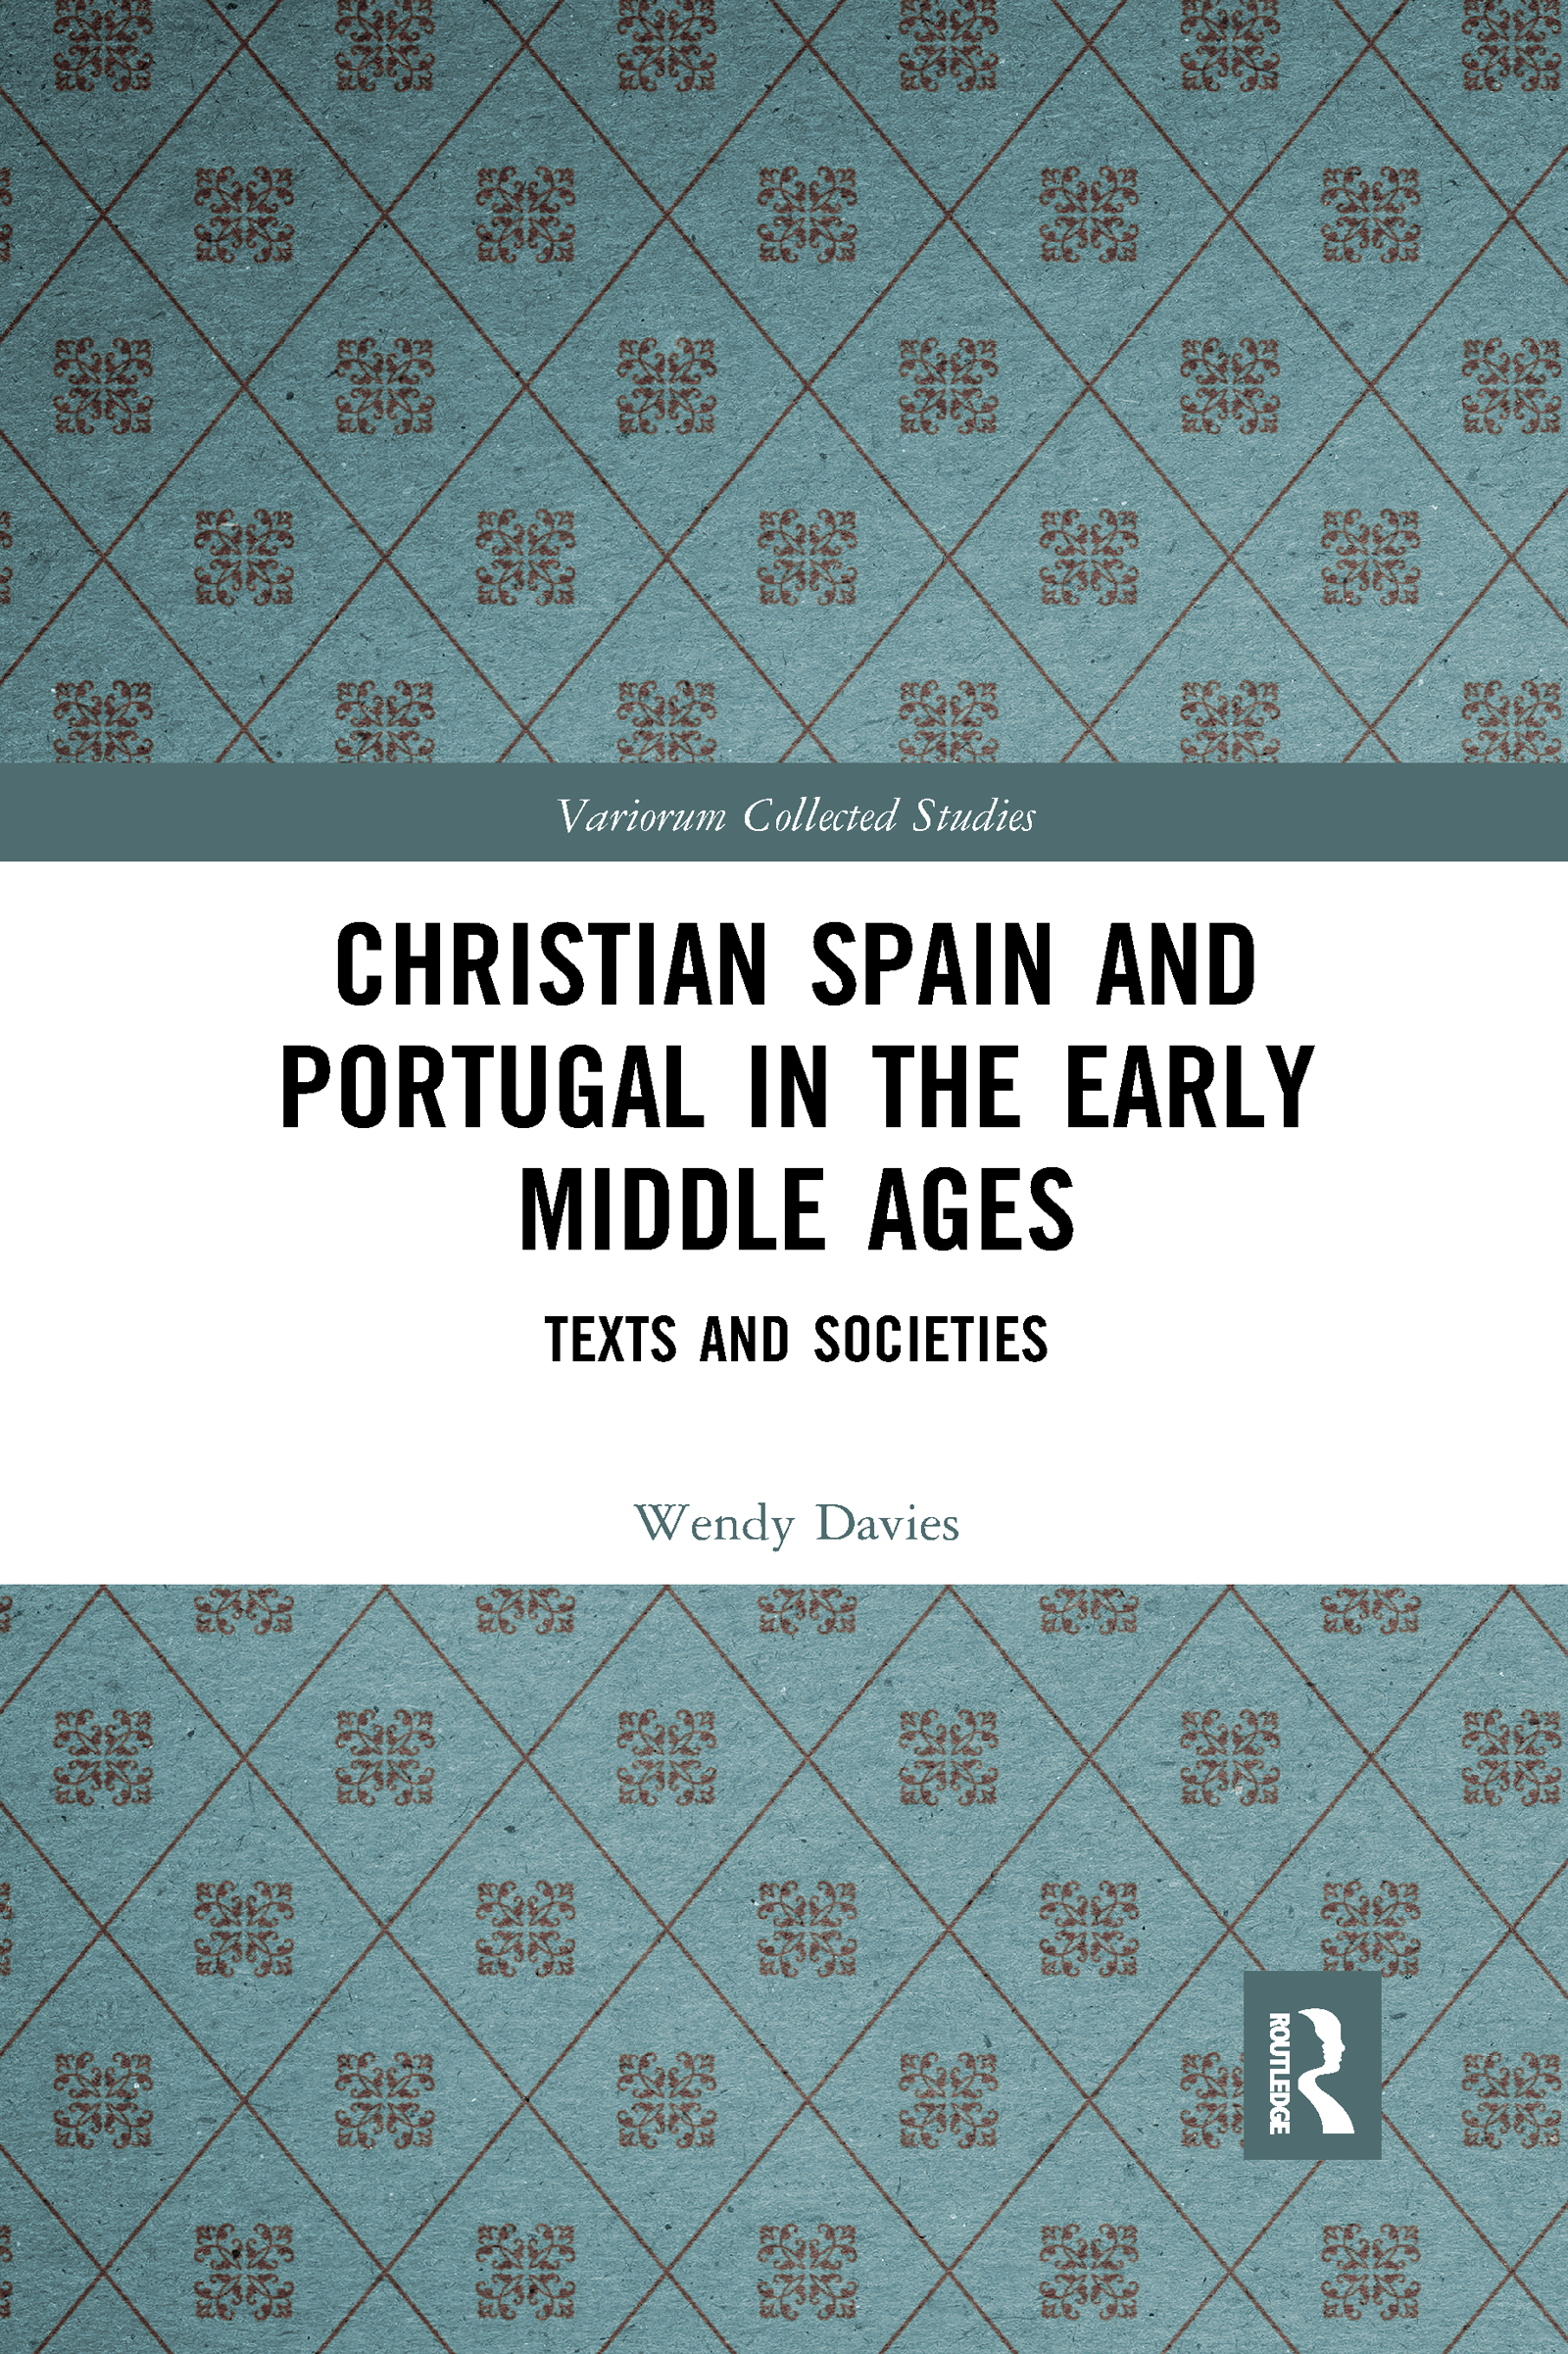 Christian Spain and Portugal in the Early Middle Ages